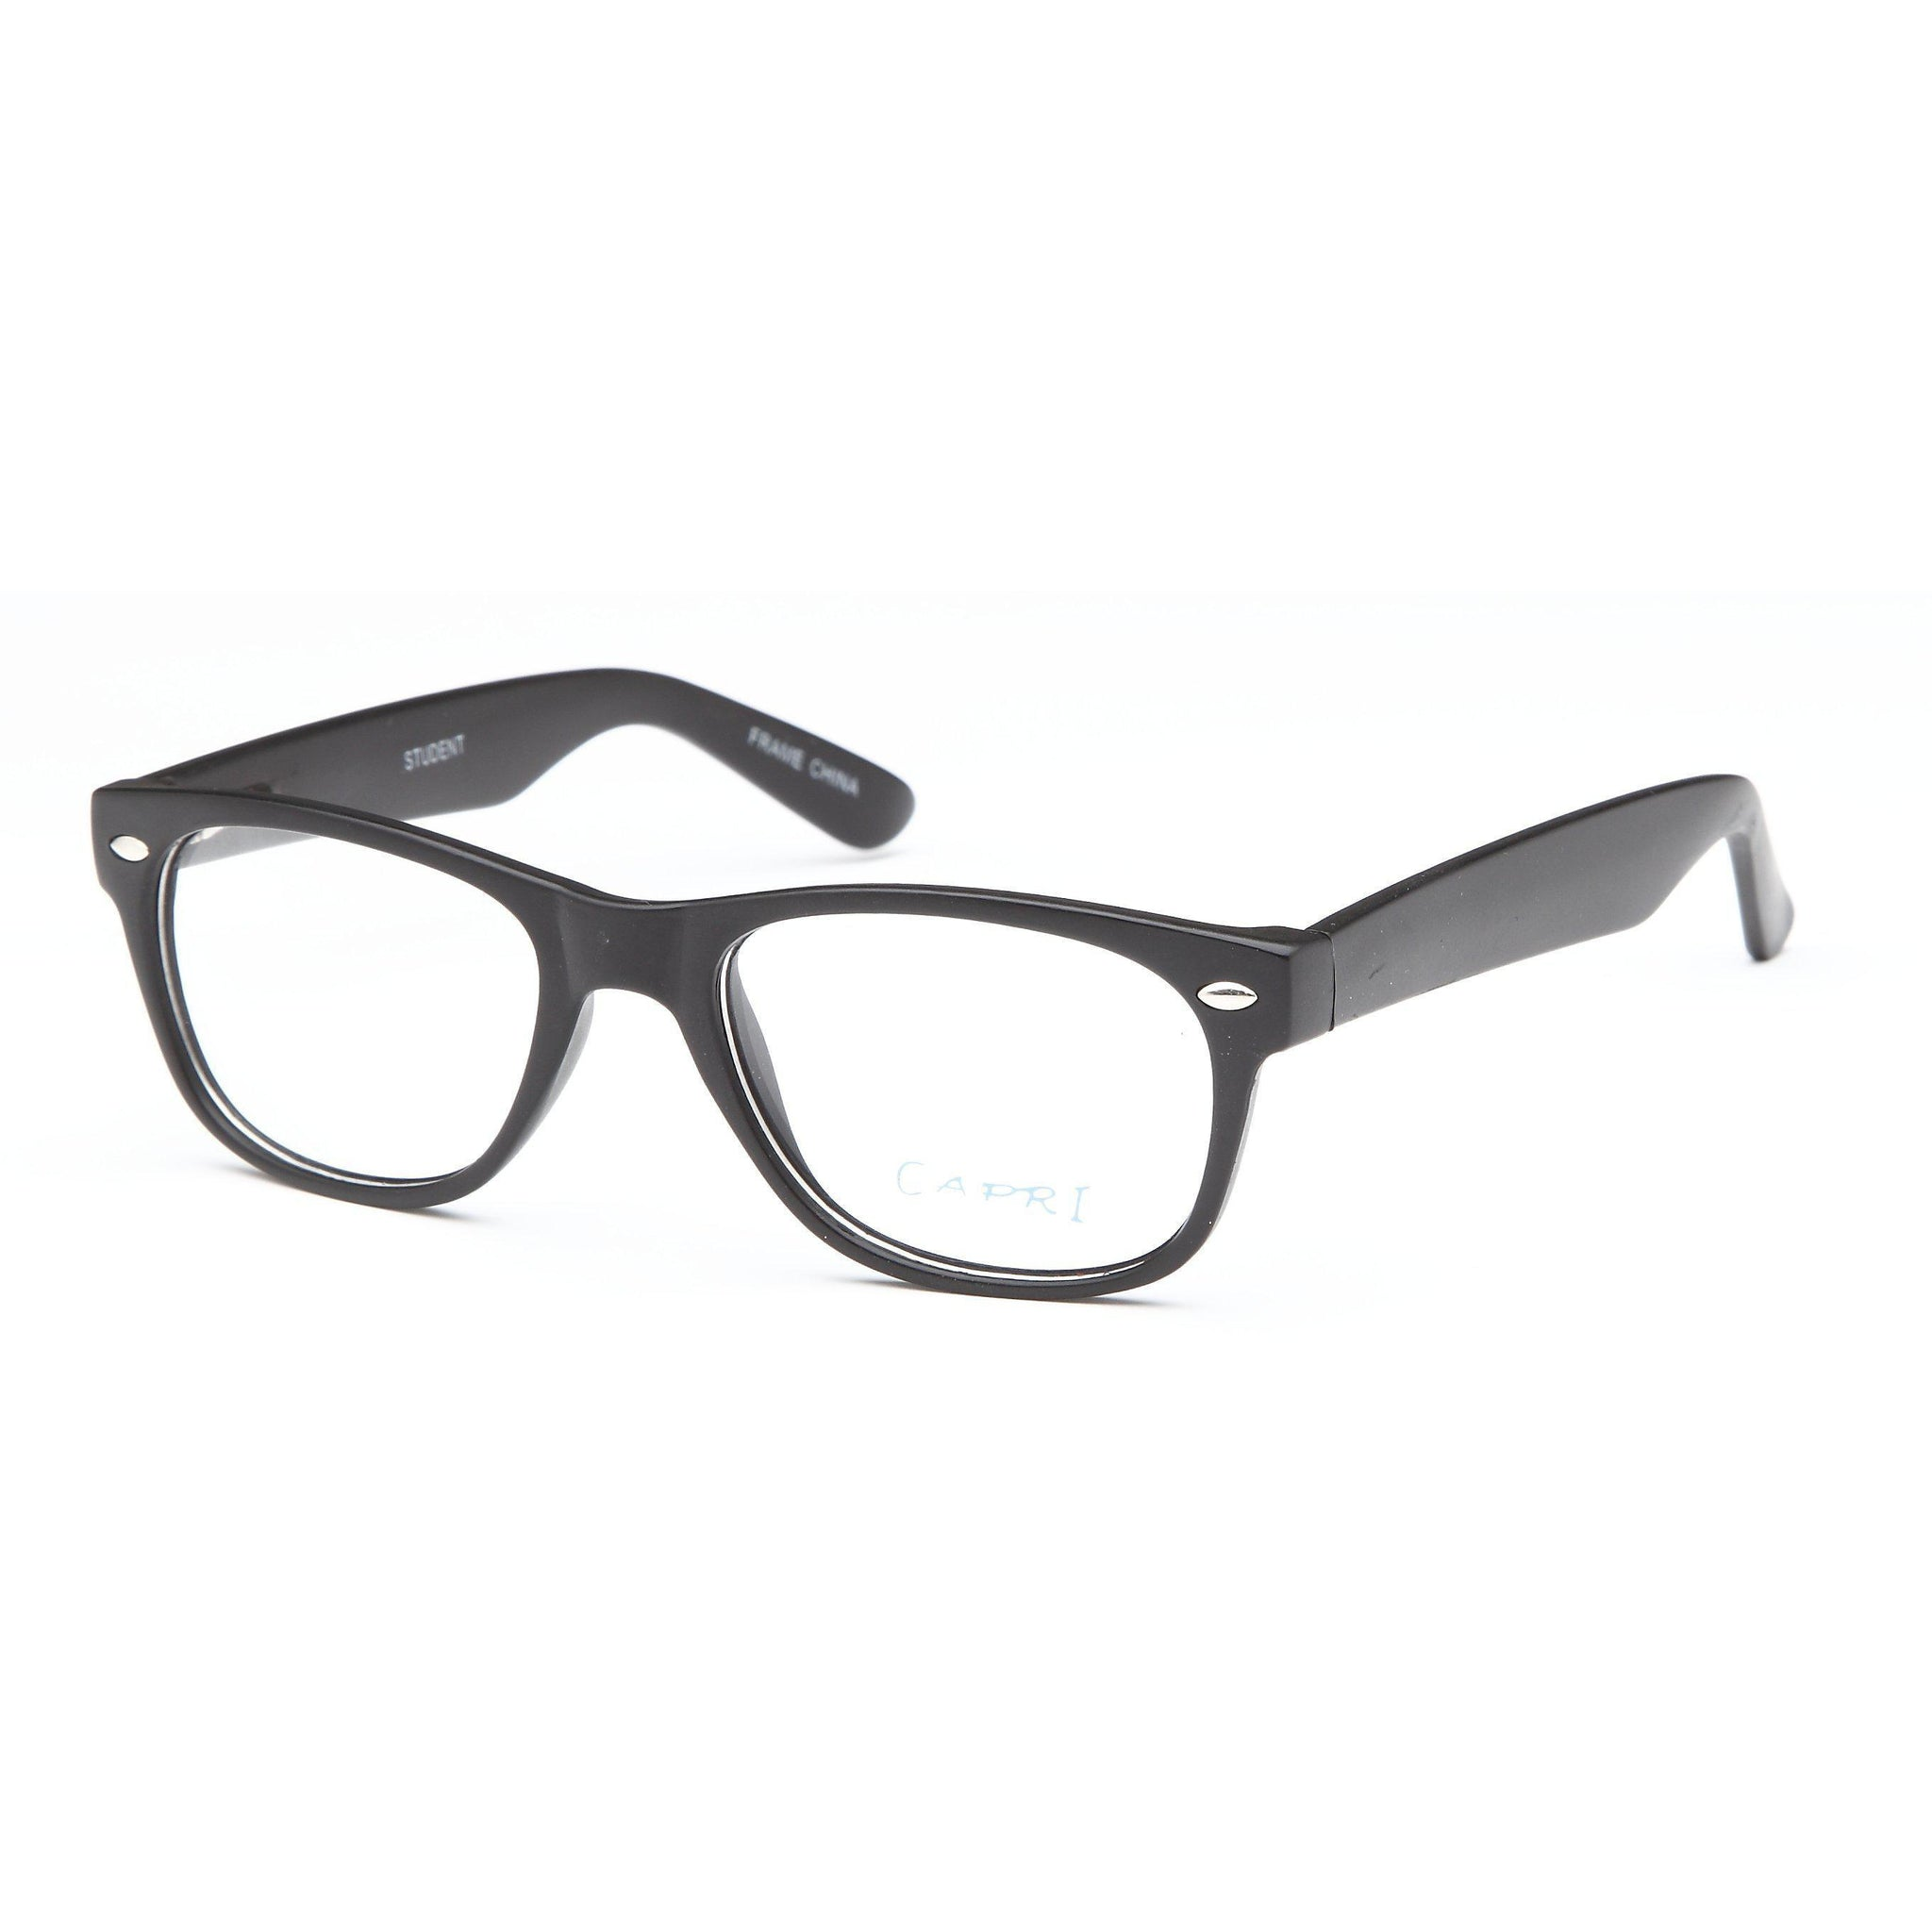 GEN Y Prescription Glasses STUDENT Eyeglasses Frame